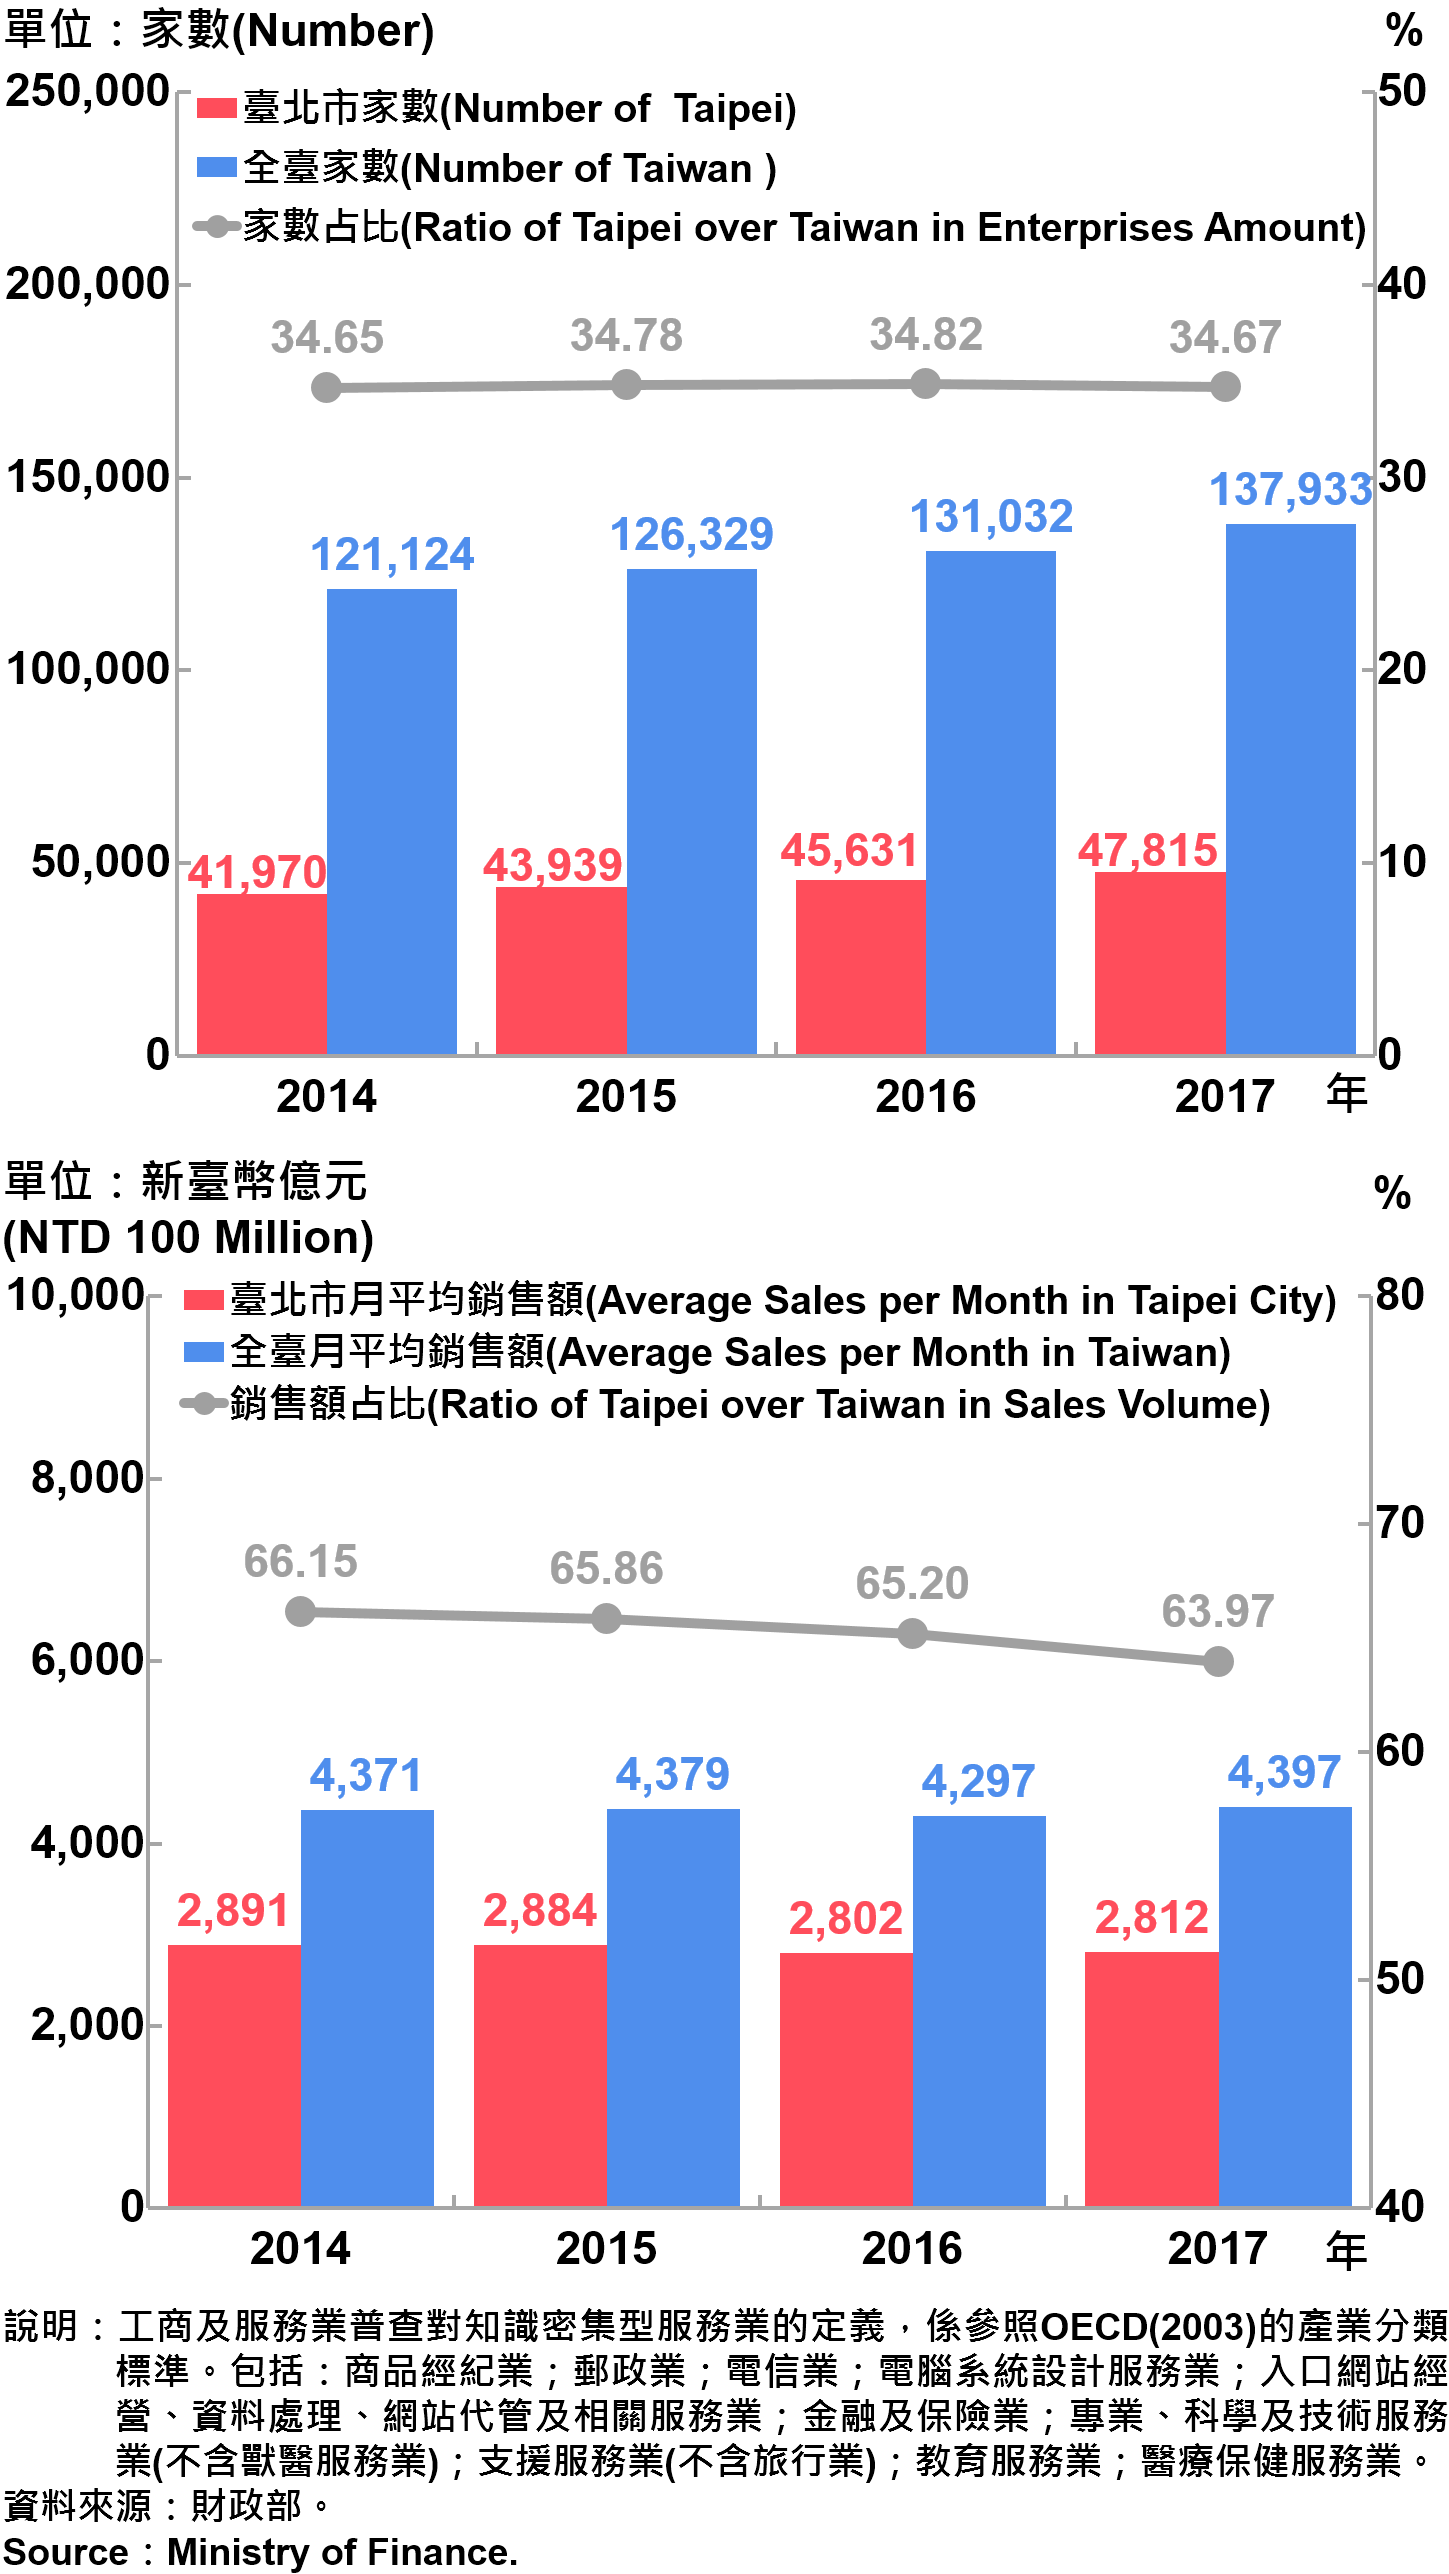 圖17、臺北市知識密集型服務業之家數及銷售額—2017 Statistics Knowledge Intensive Service Industry in Taipei City—2017